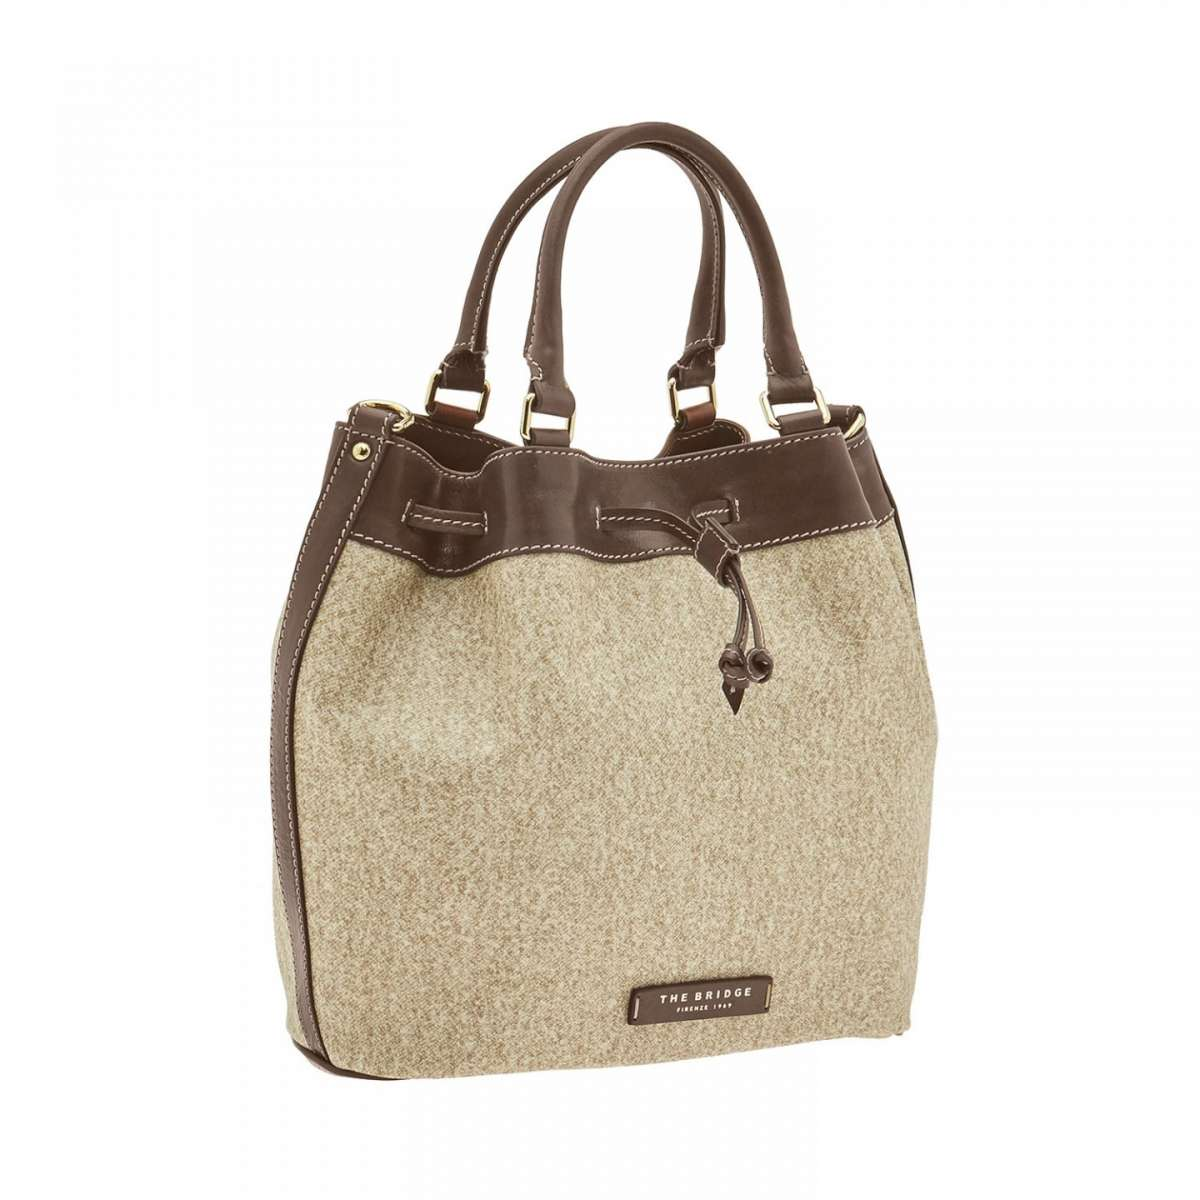 Borsa secchiello con dettagli in pelle The Bridge